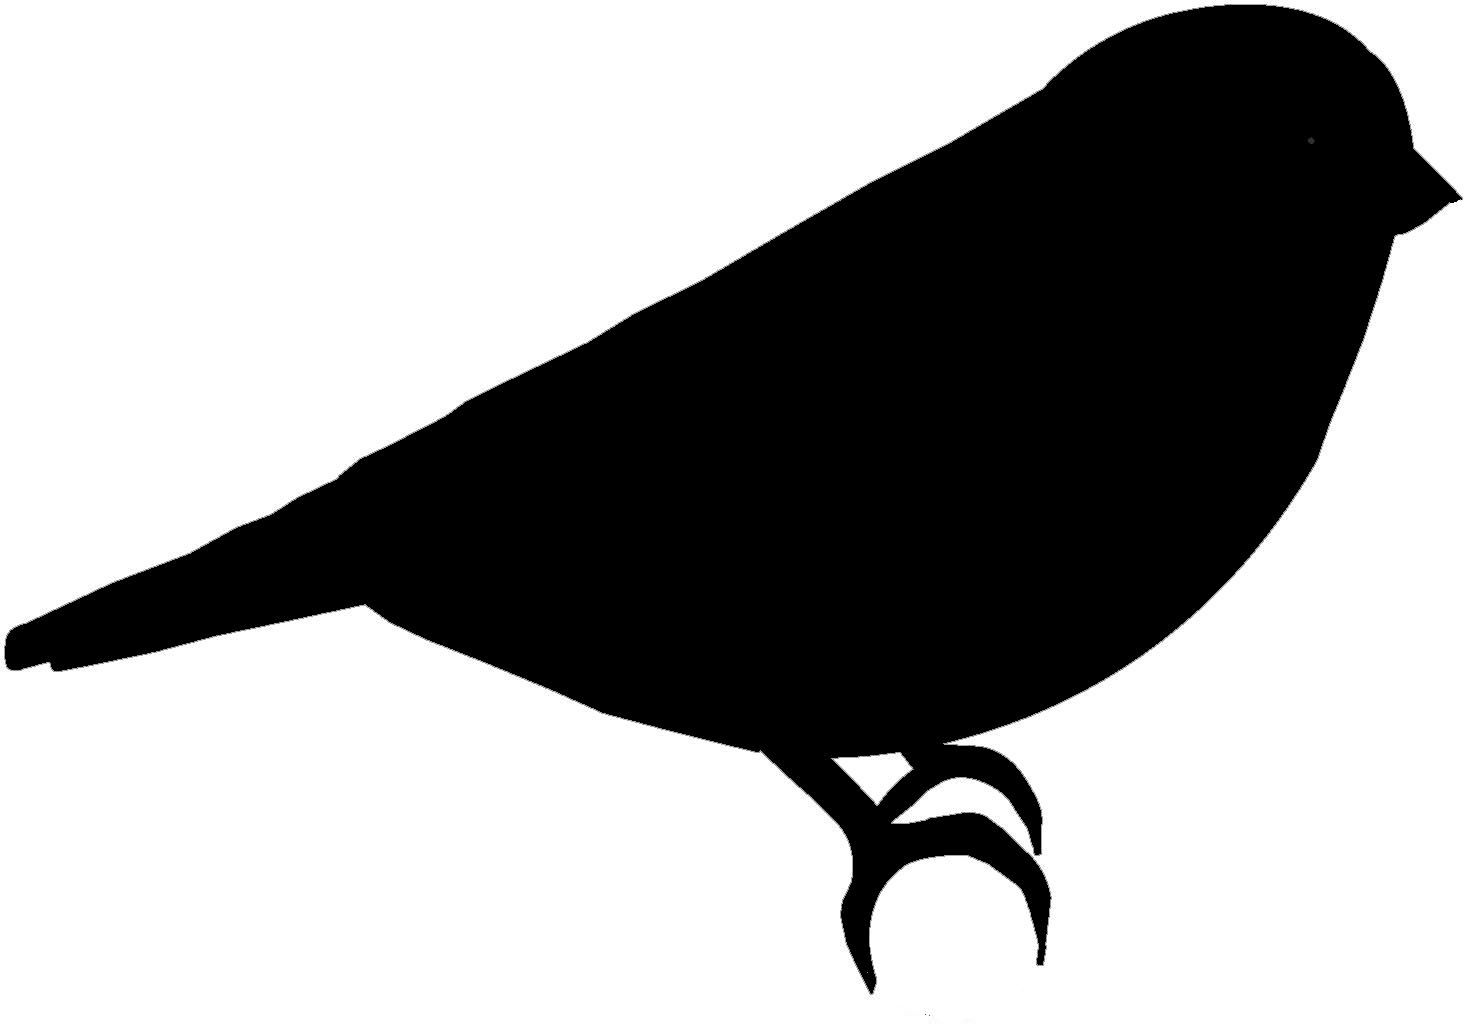 quail silhouette clip art - photo #30